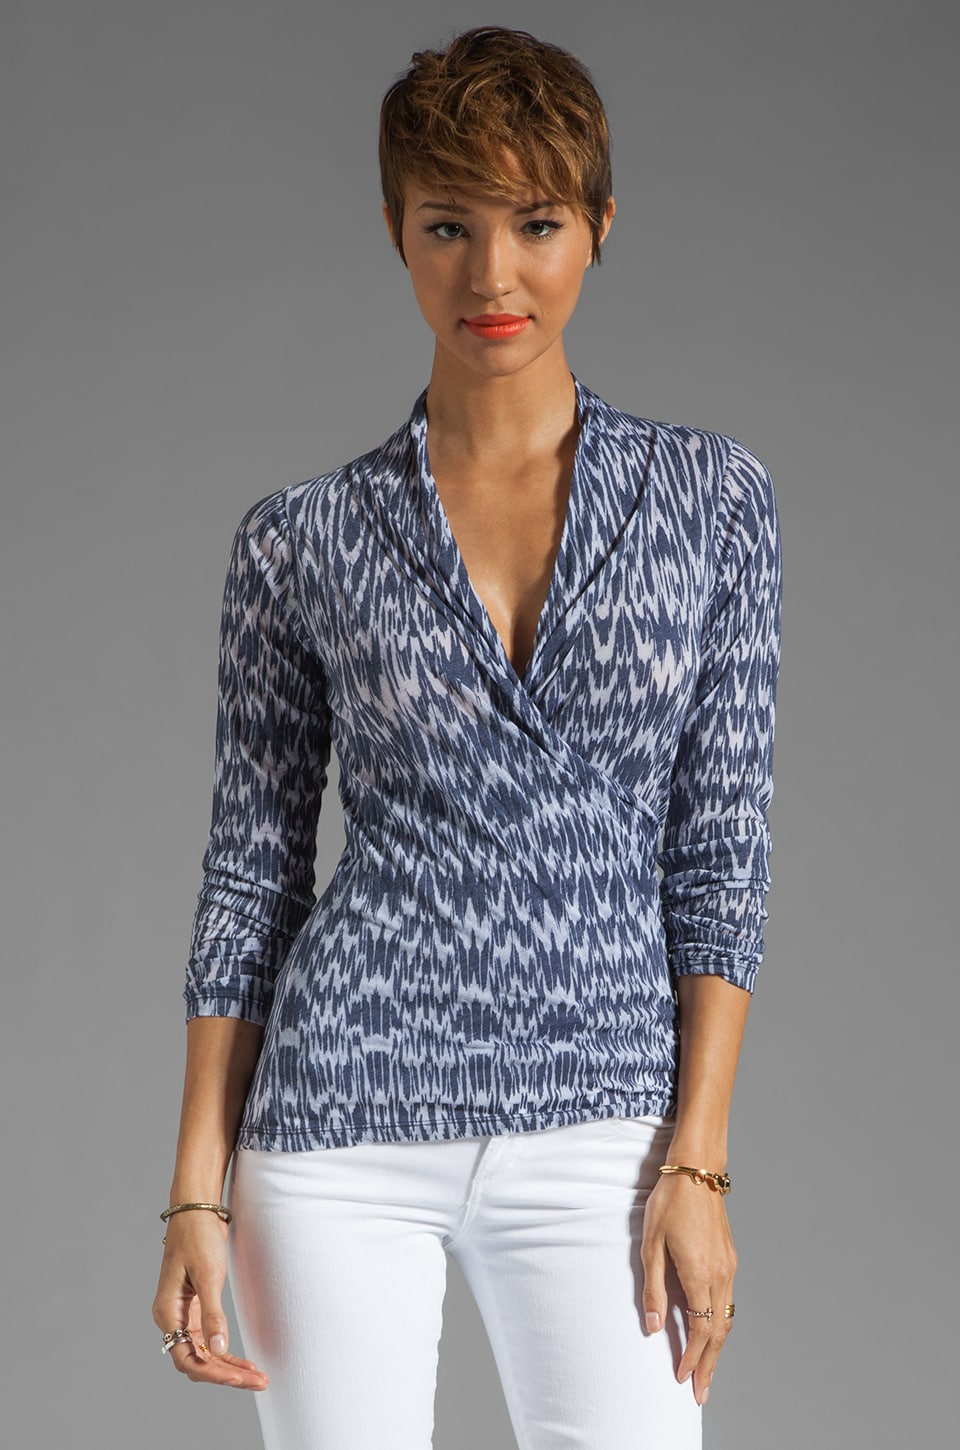 Velvet by Graham & Spencer Ikat Burnout Cadmus Faux Wrap Top in Coastline